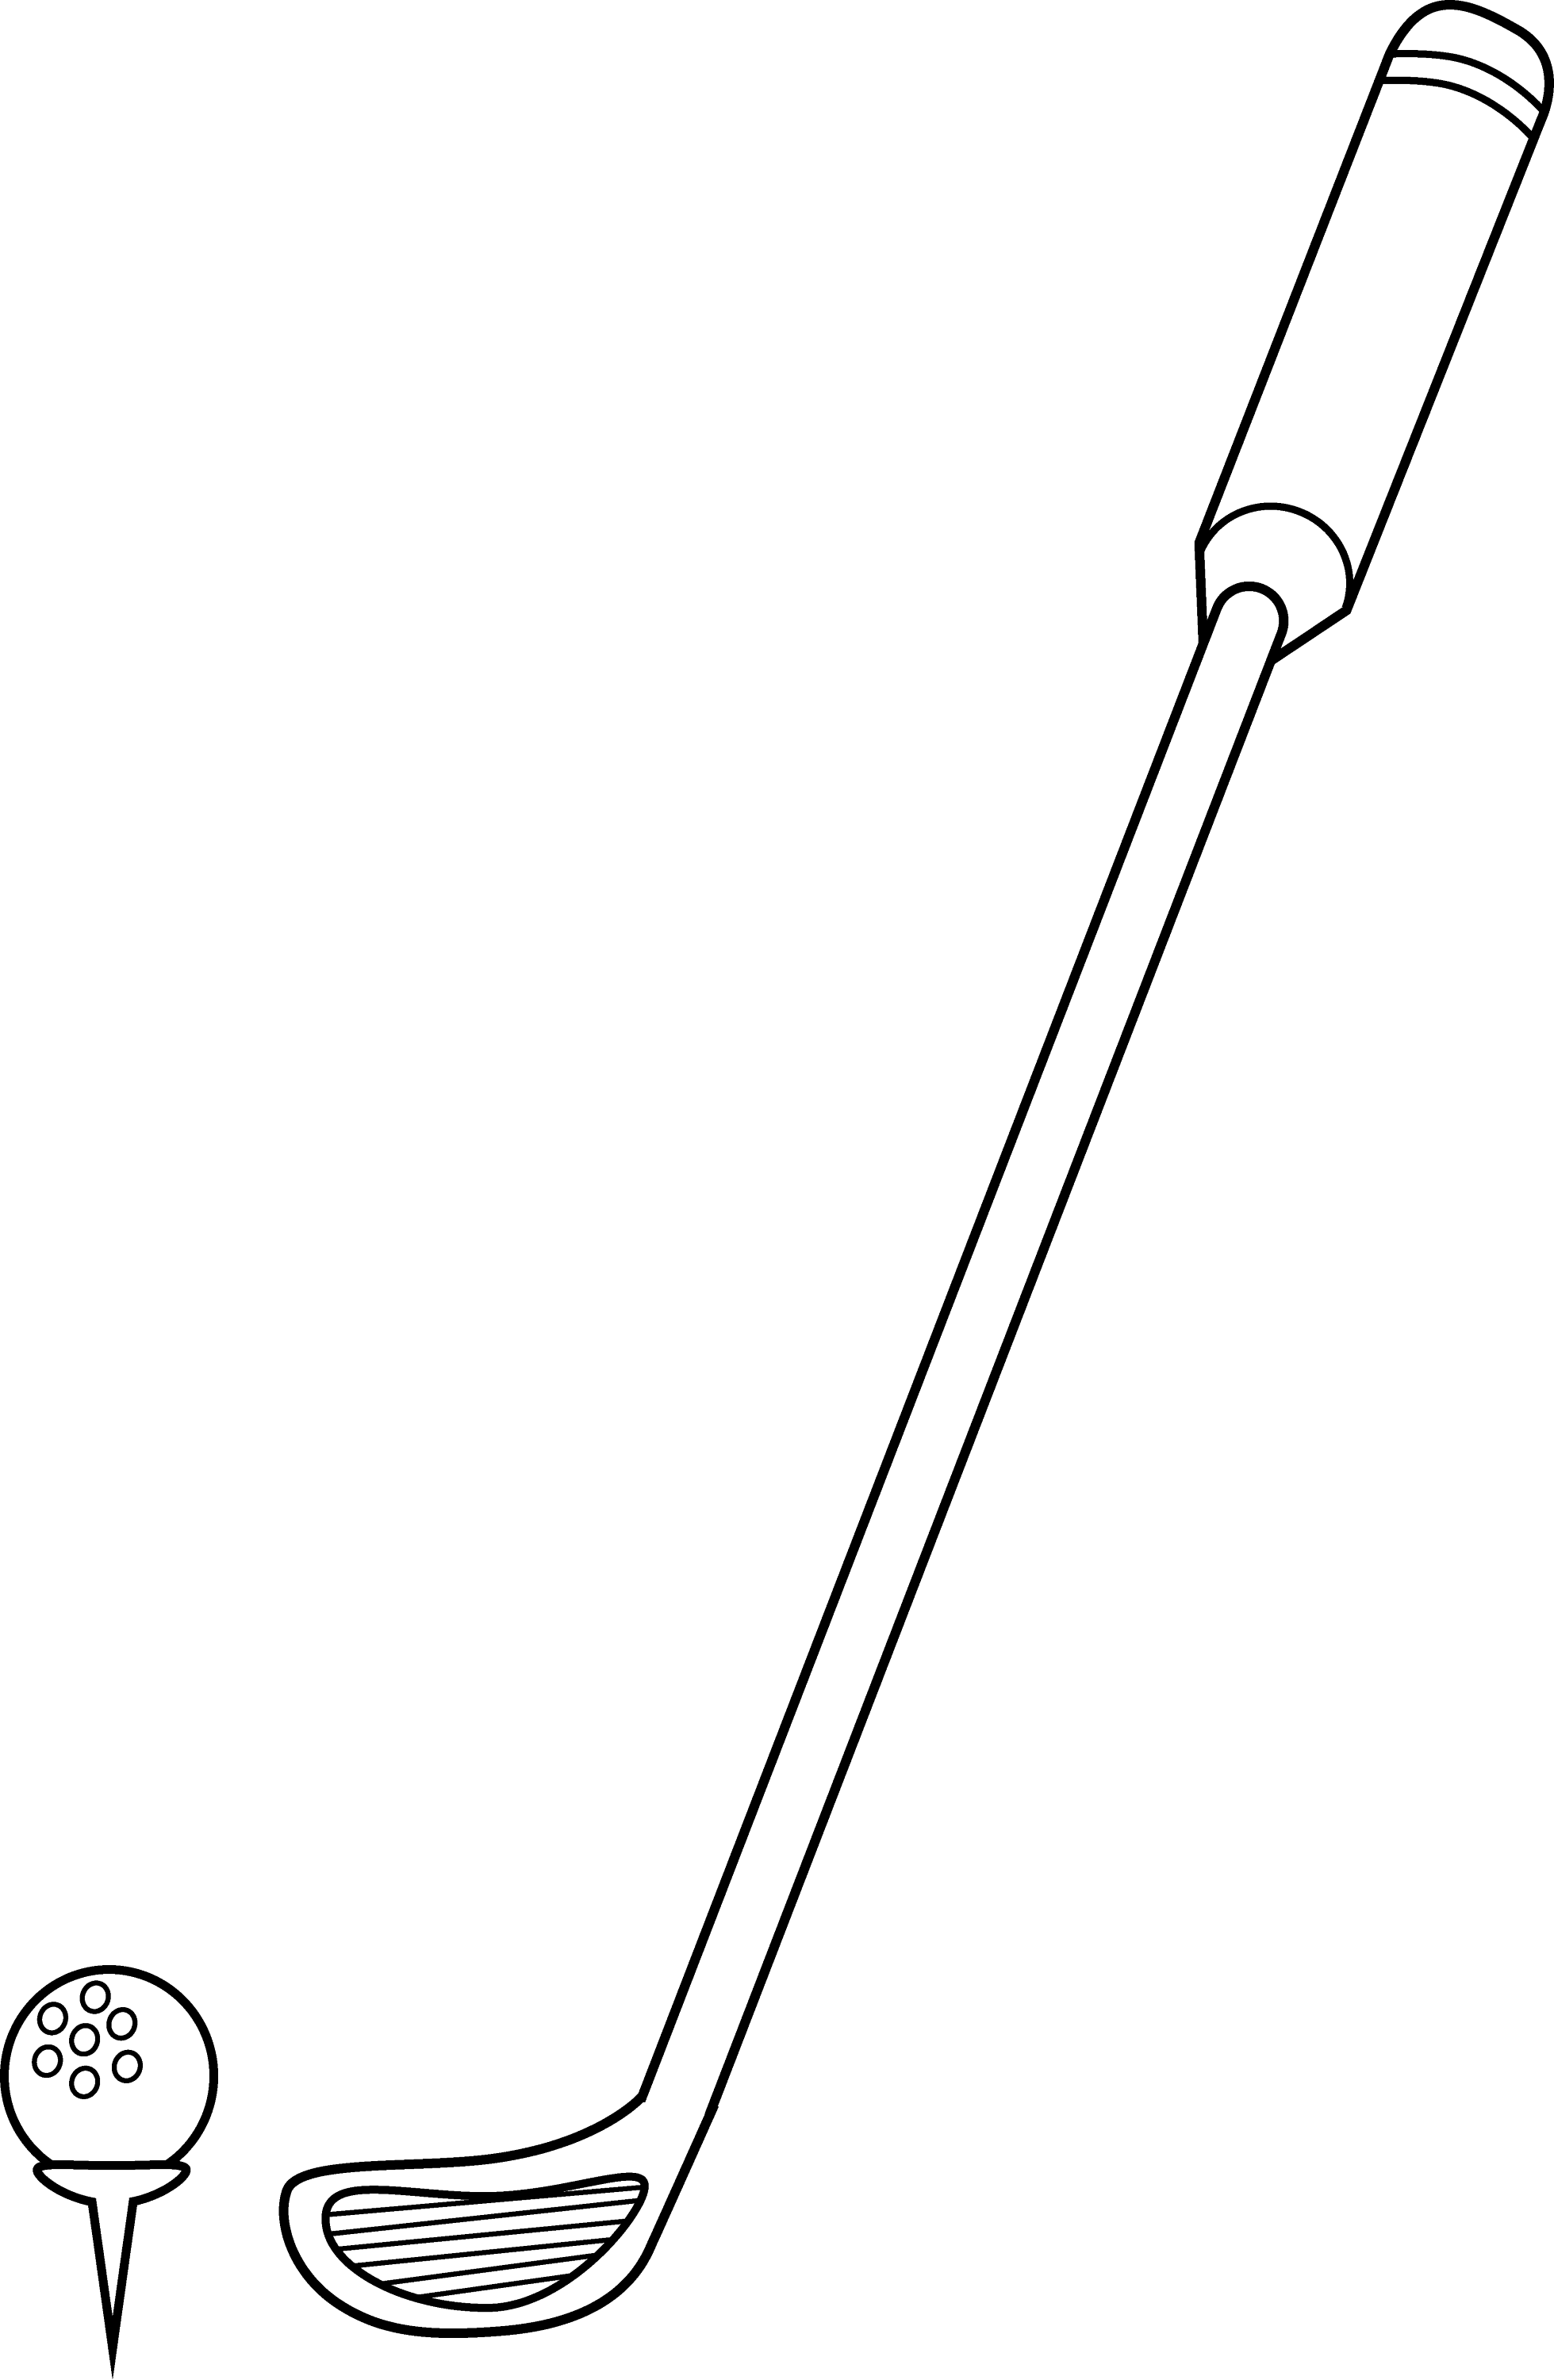 coloring book pages golf clubs - photo#38